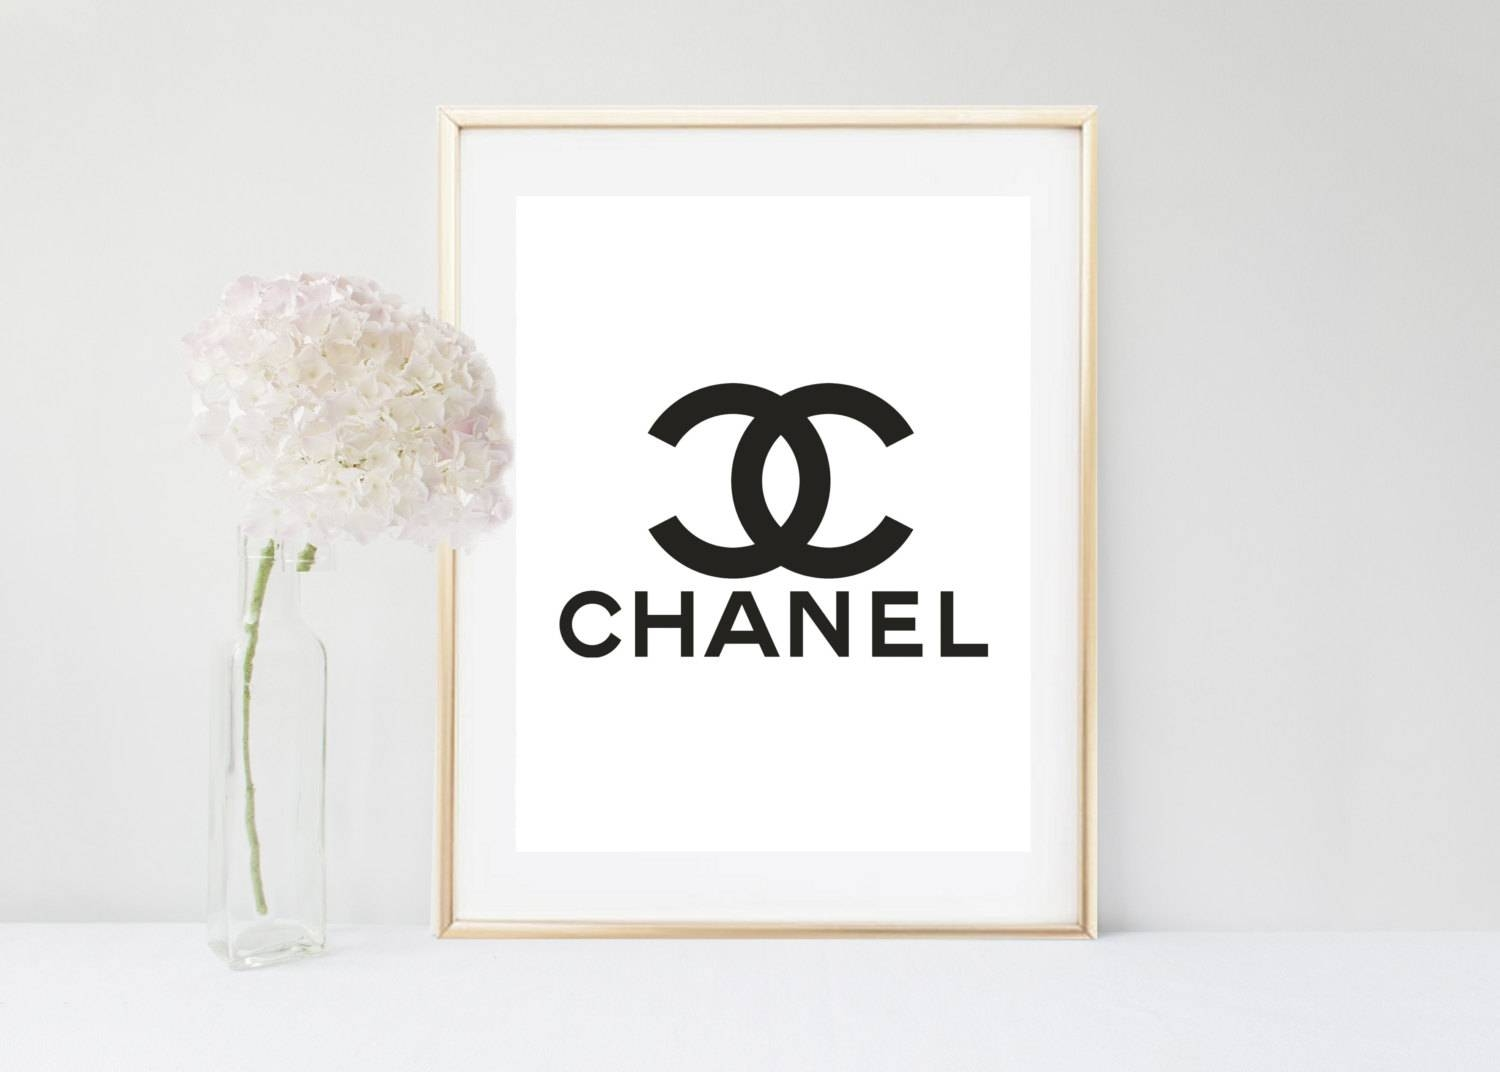 Chanel Wall Art Pink Chanel Logo Printable Art Coco Chanel Pertaining To Most Up To Date Chanel Wall Decor (View 2 of 25)